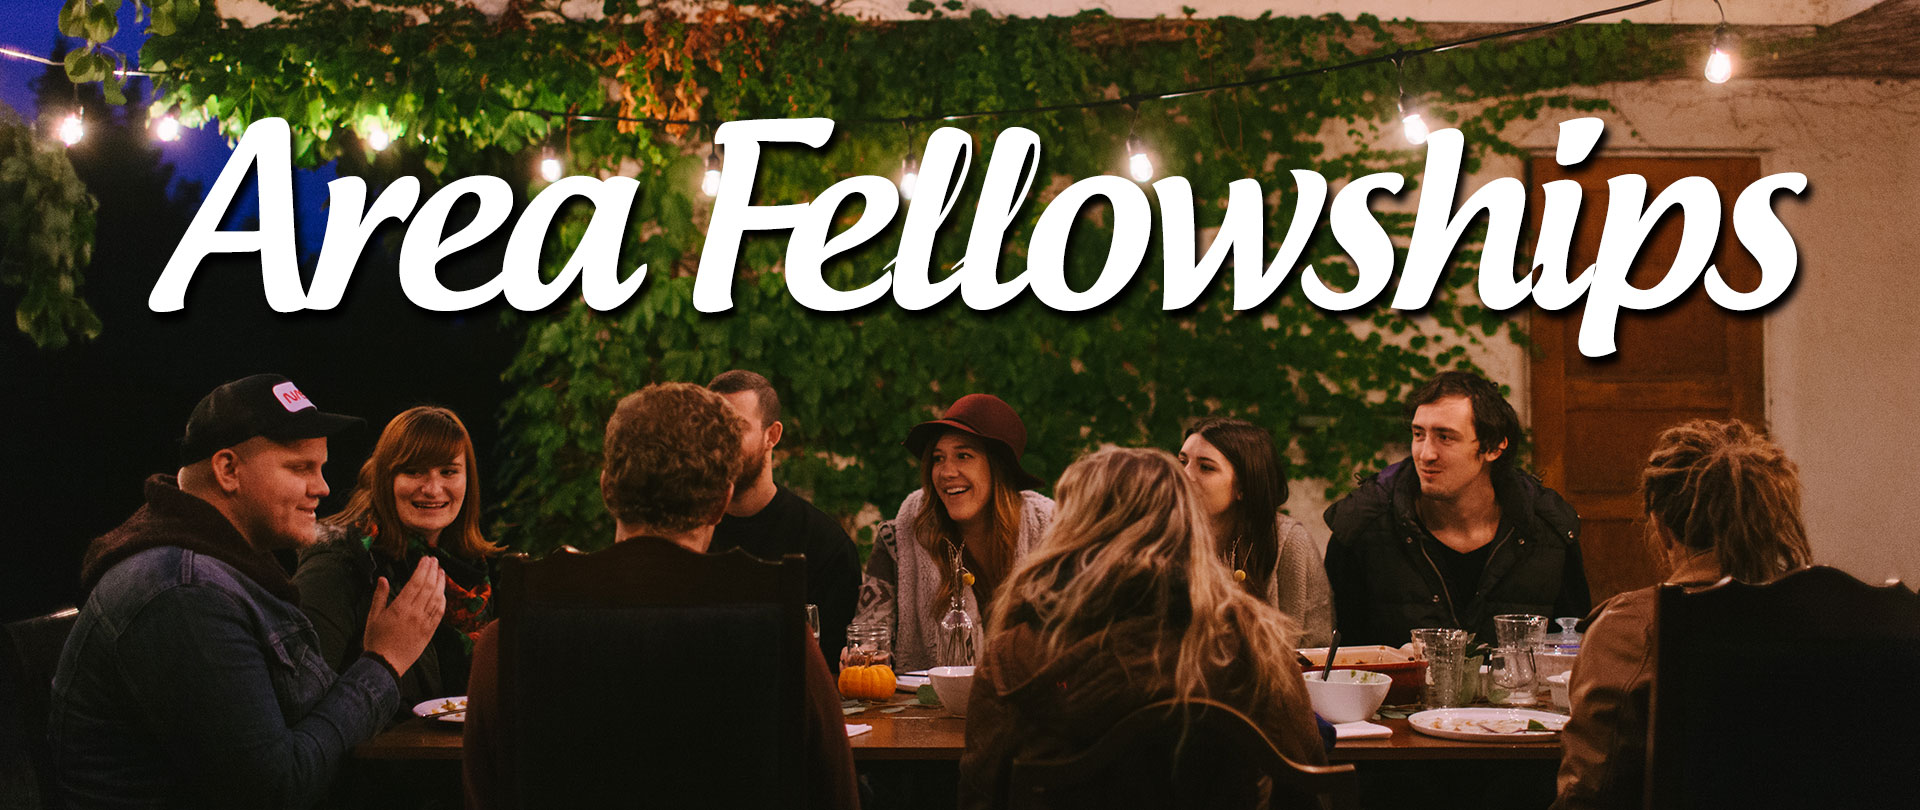 Area Fellowships Groups